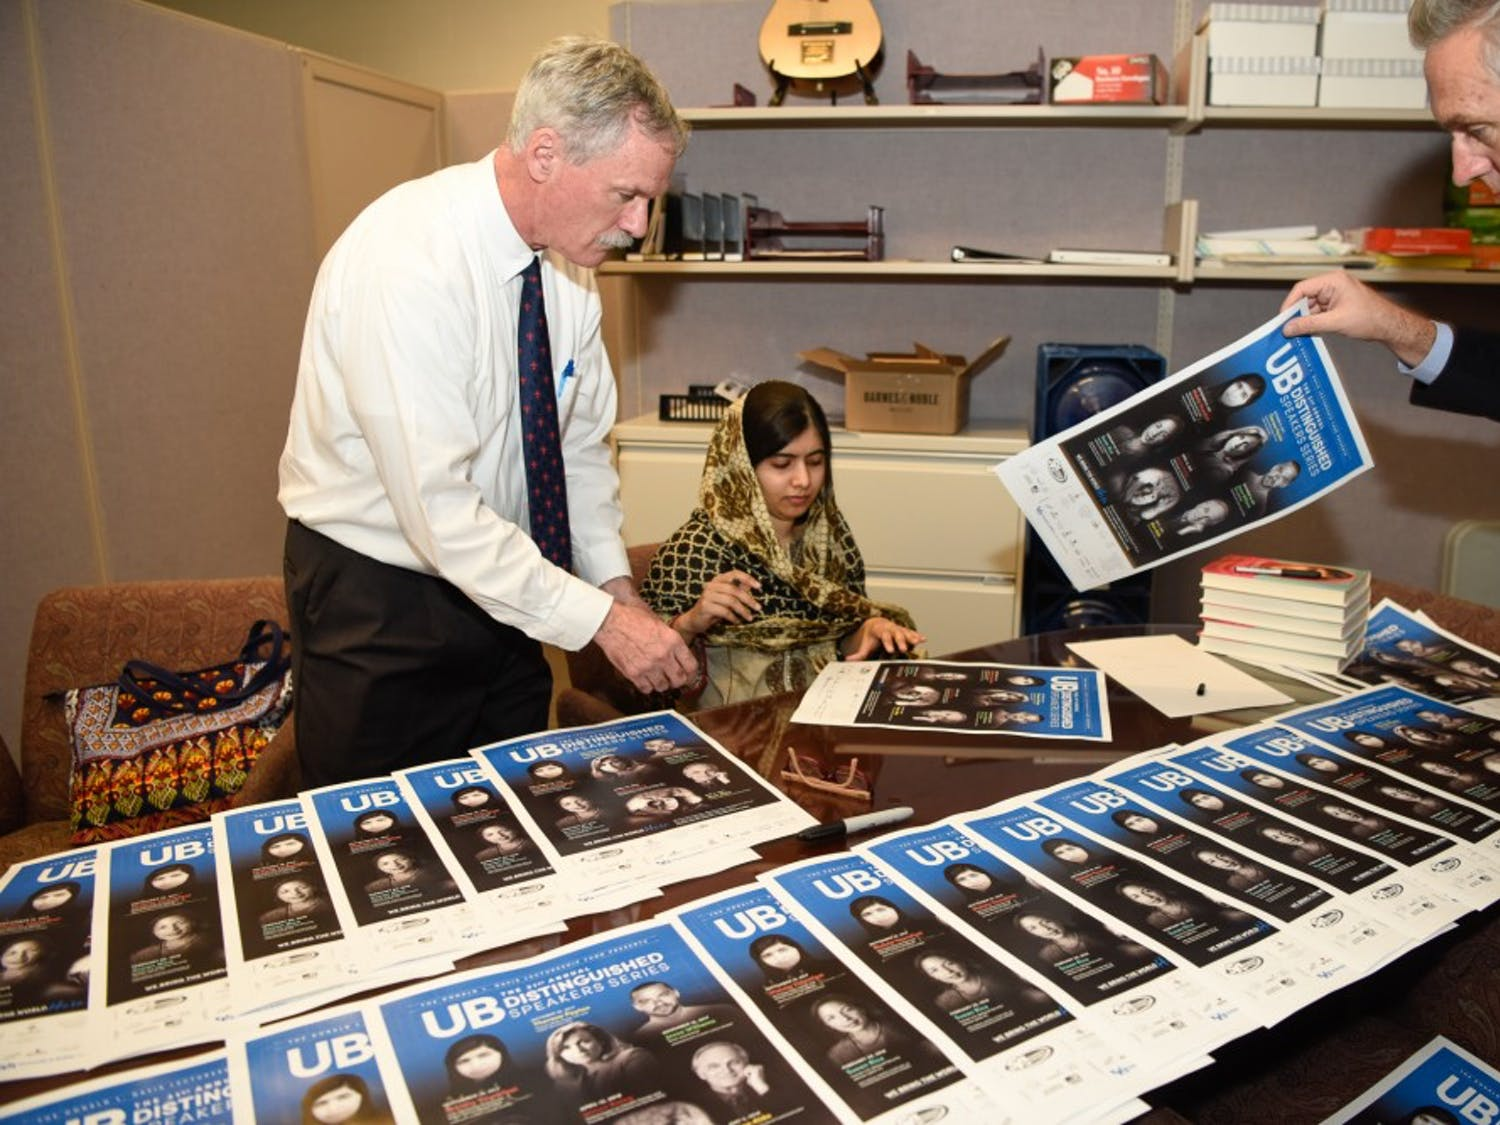 William Regan (left) hands Distinguished Speakers Series posters to Nobel Peace Prize winner and activist Malala Yousafzai. Regan's office, the office of University Events, has hosted the lecture-based, educative series for over three decades at UB.